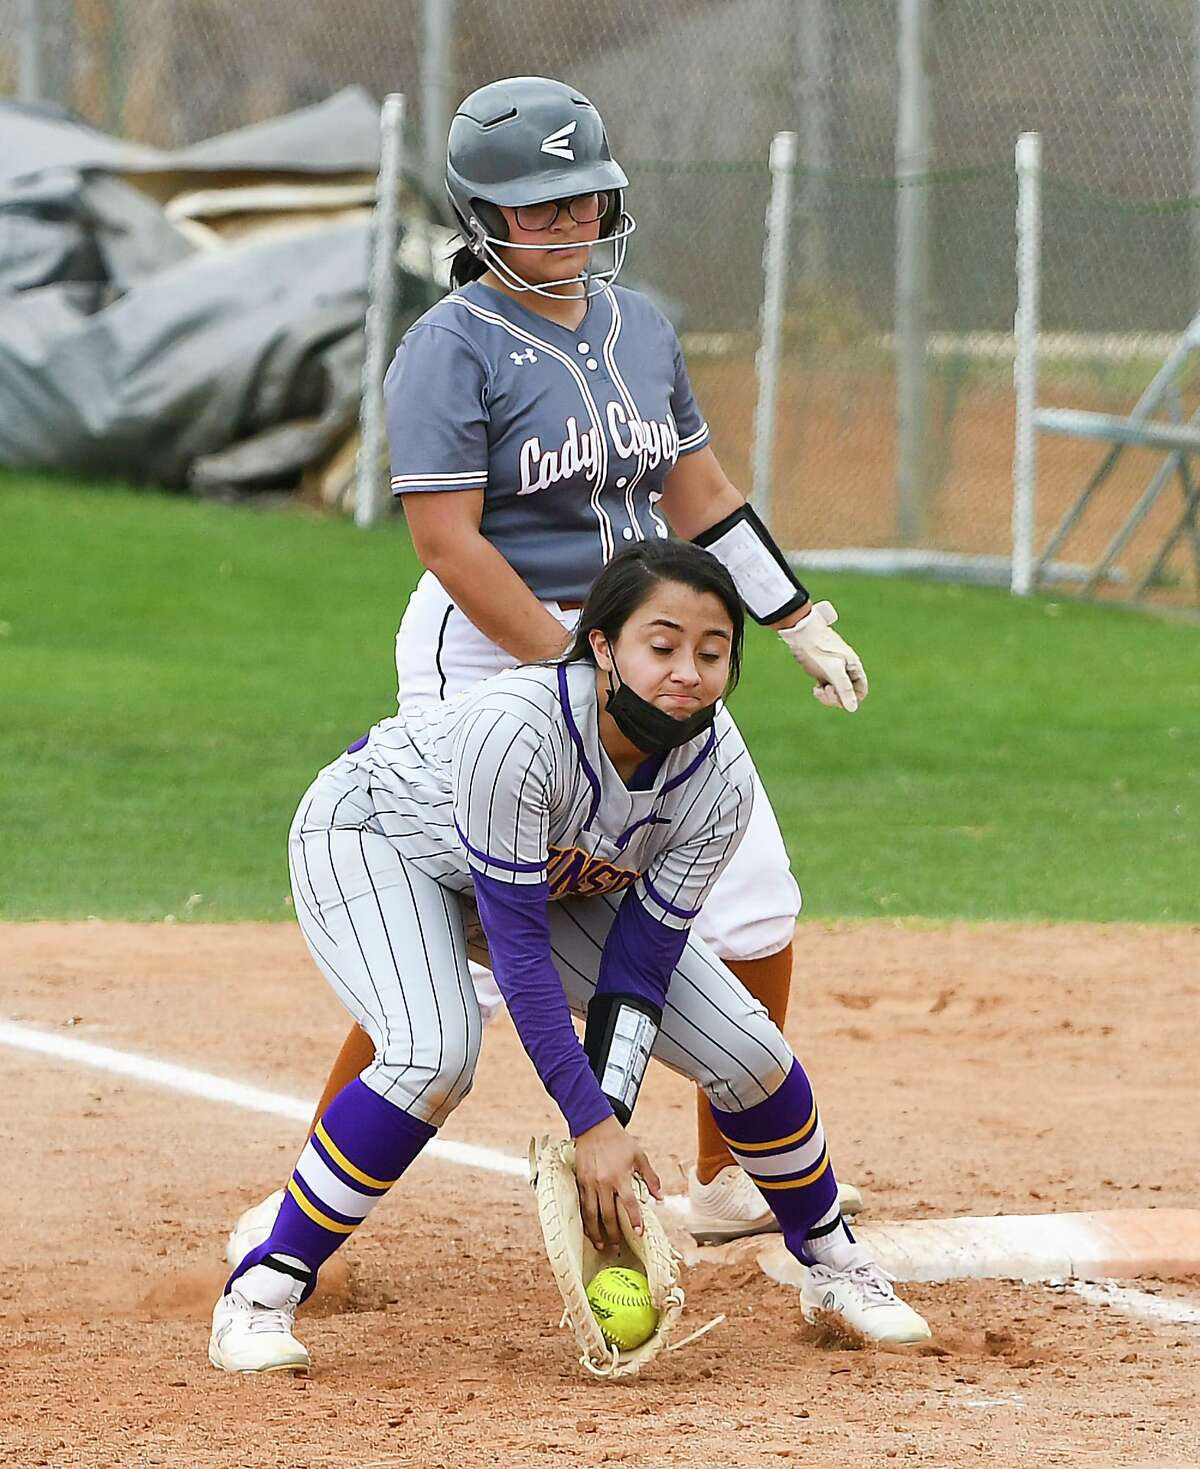 The Lady Wolves were out hit 7-6 in the loss Saturday.